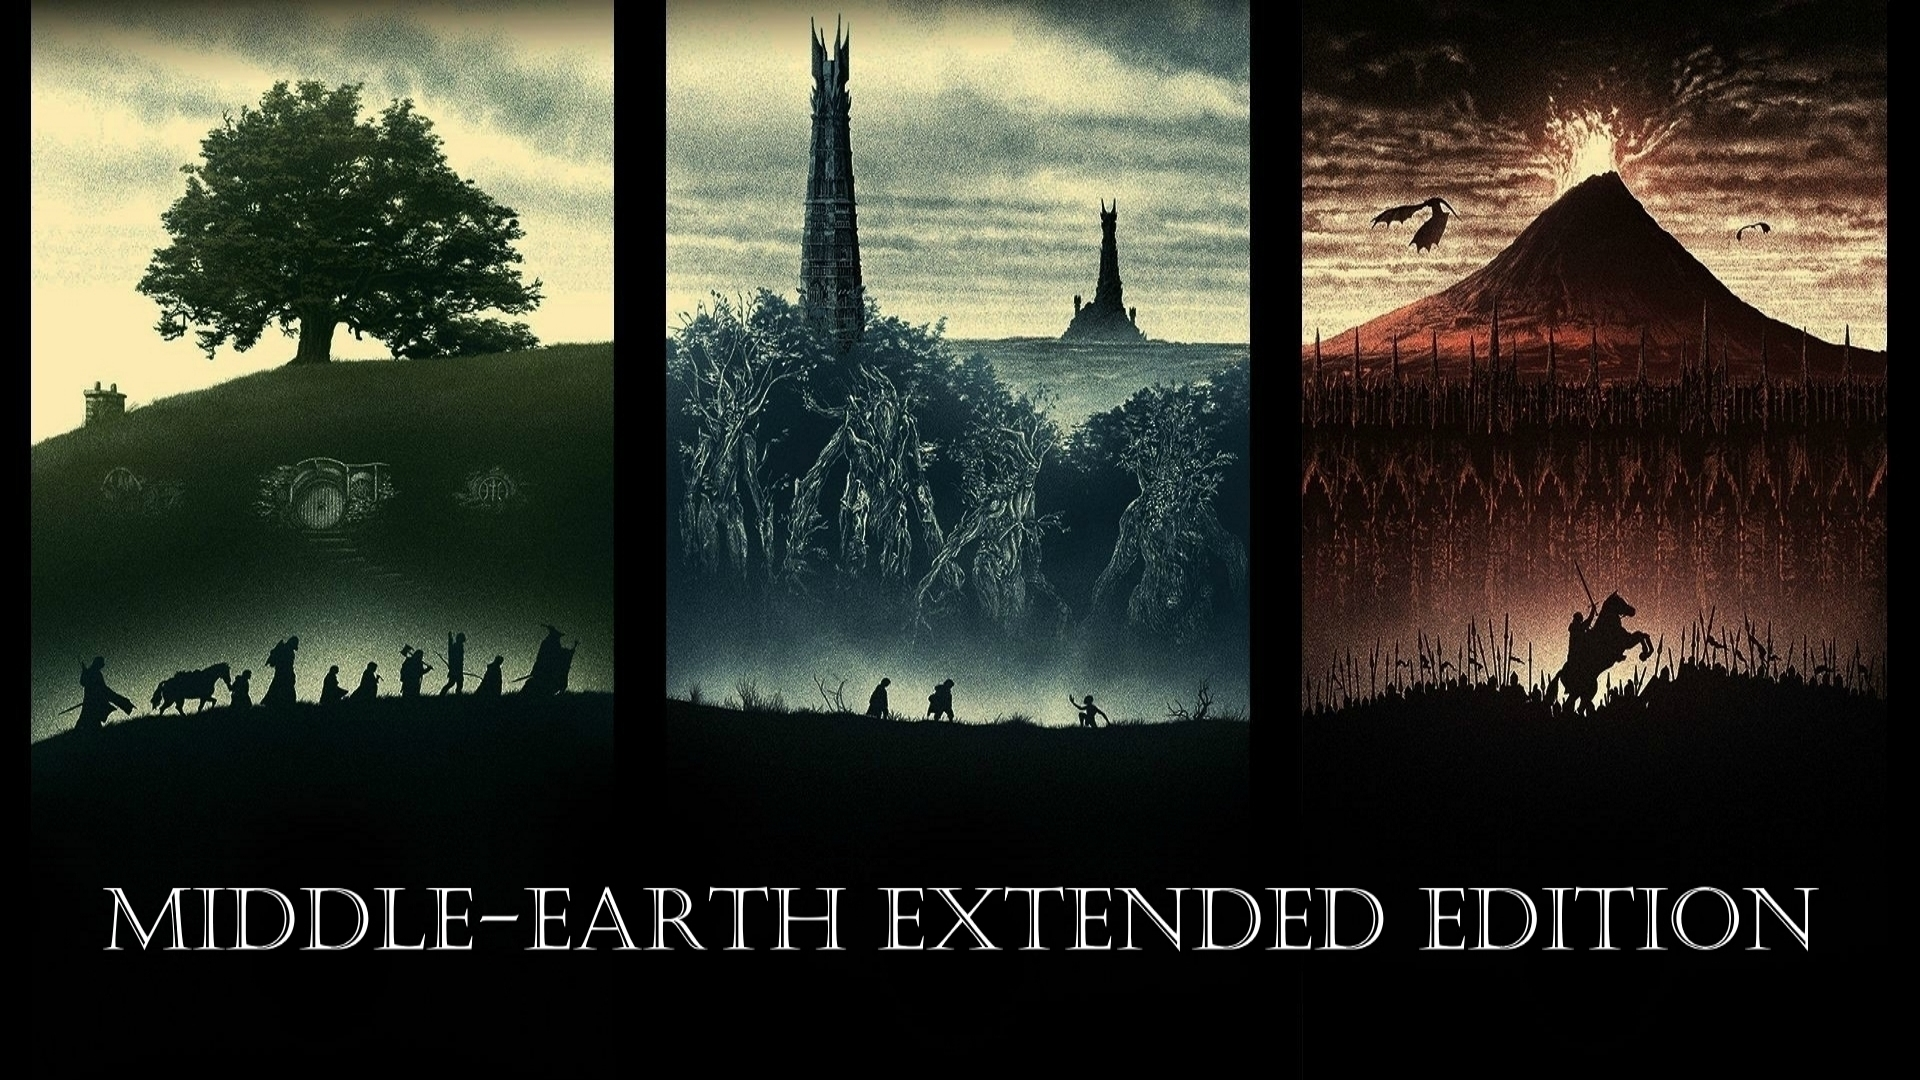 https://xgm.guru/p/games/middle-earth-extended-edition-download